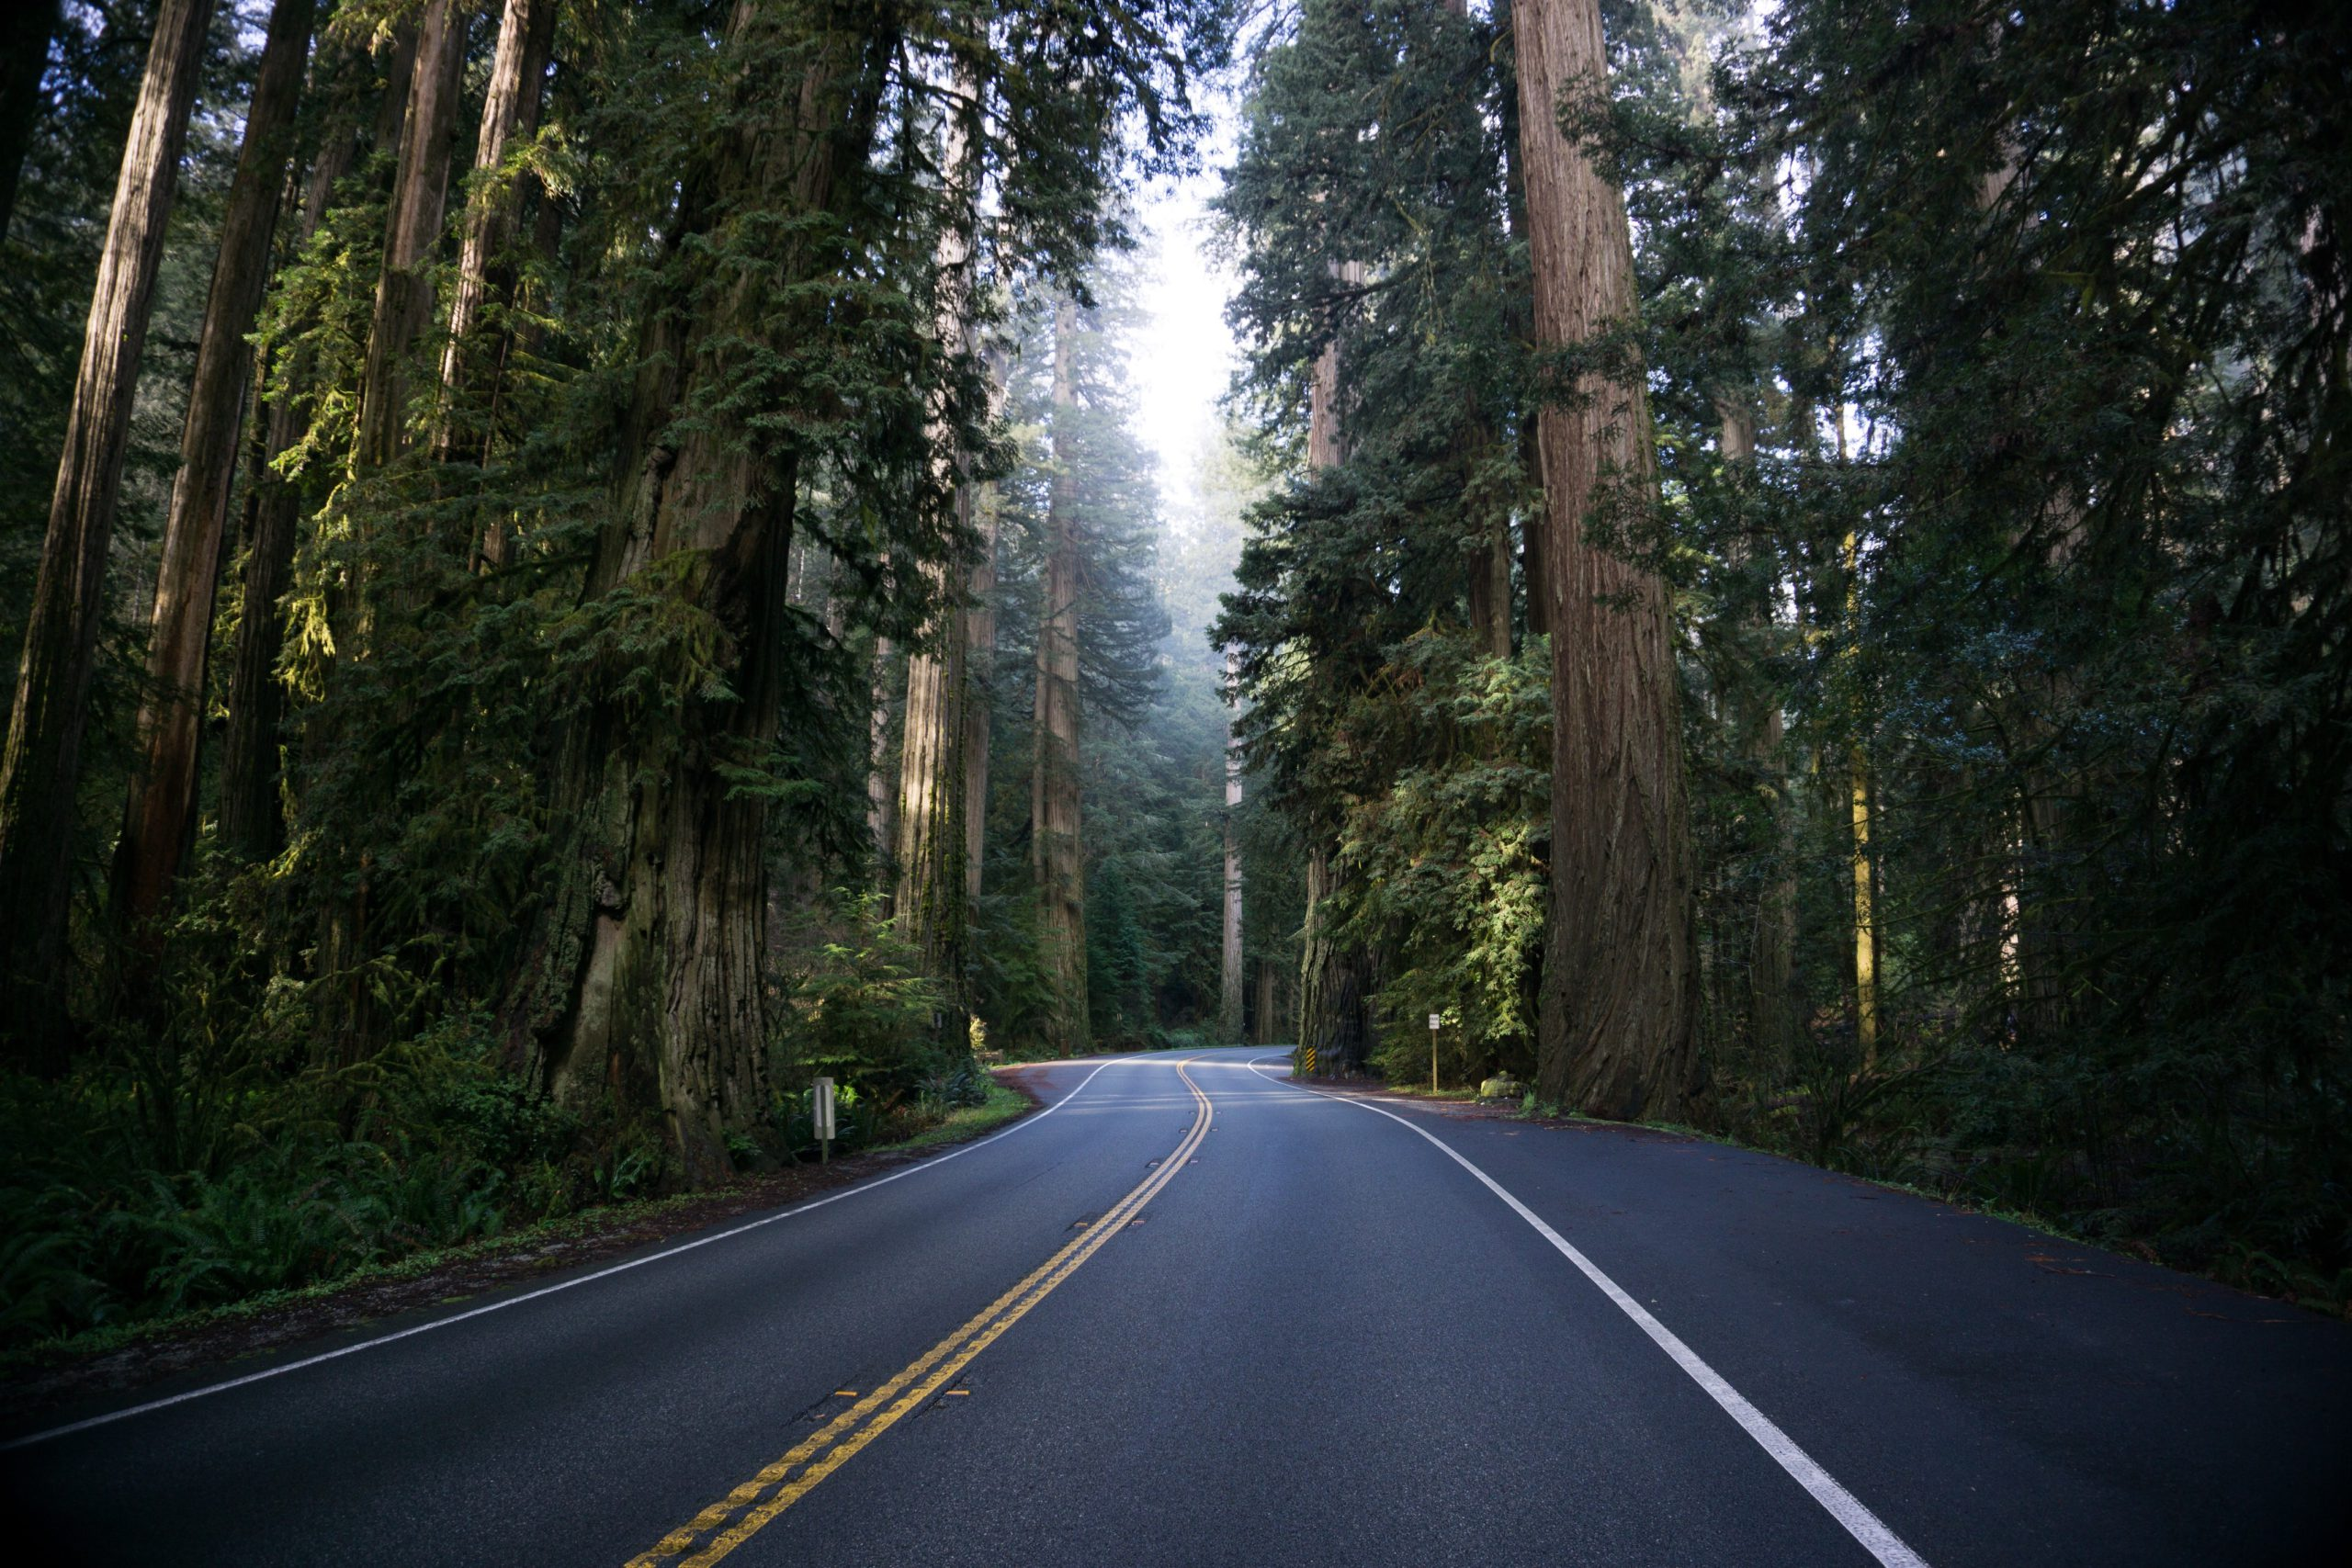 Looking for adventure? Drive further into the wilderness with these 5 EV tips